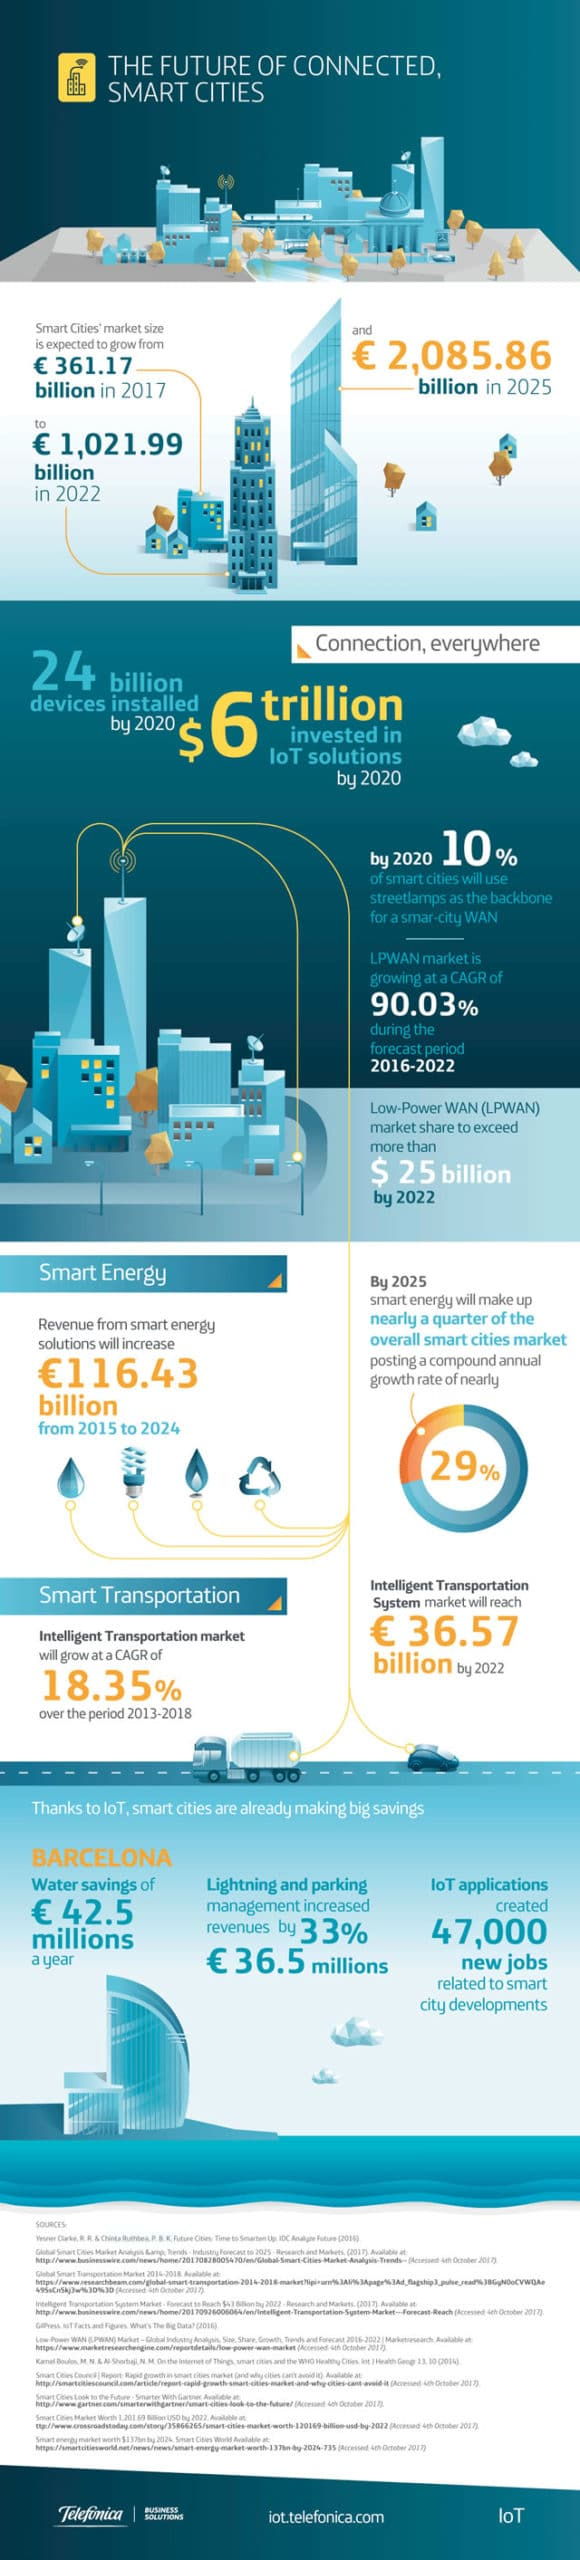 Future smart cities infographic by Telefonica IoT - source